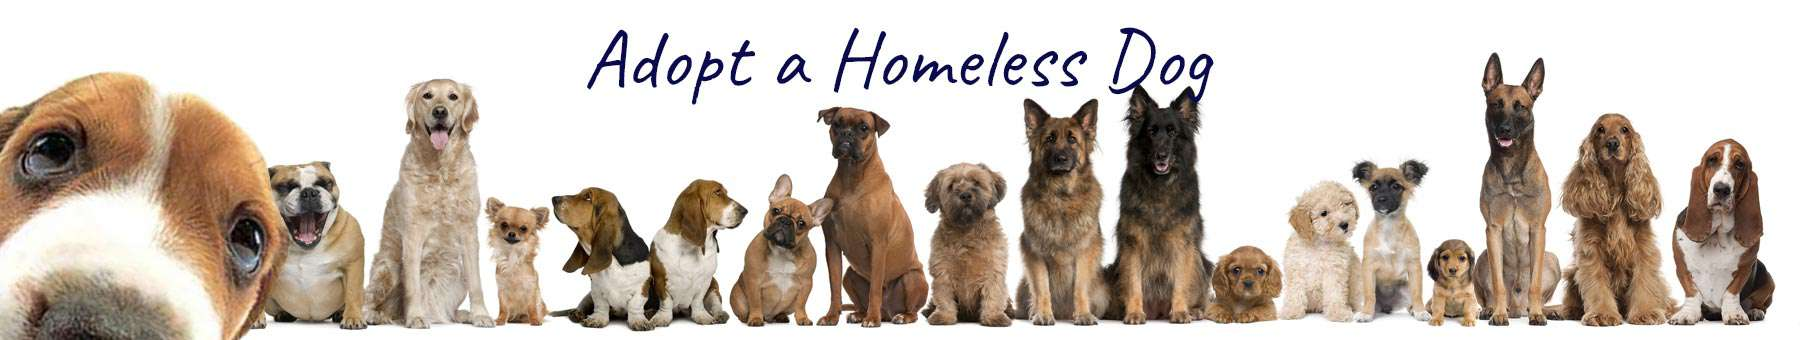 adopt a homeless dog